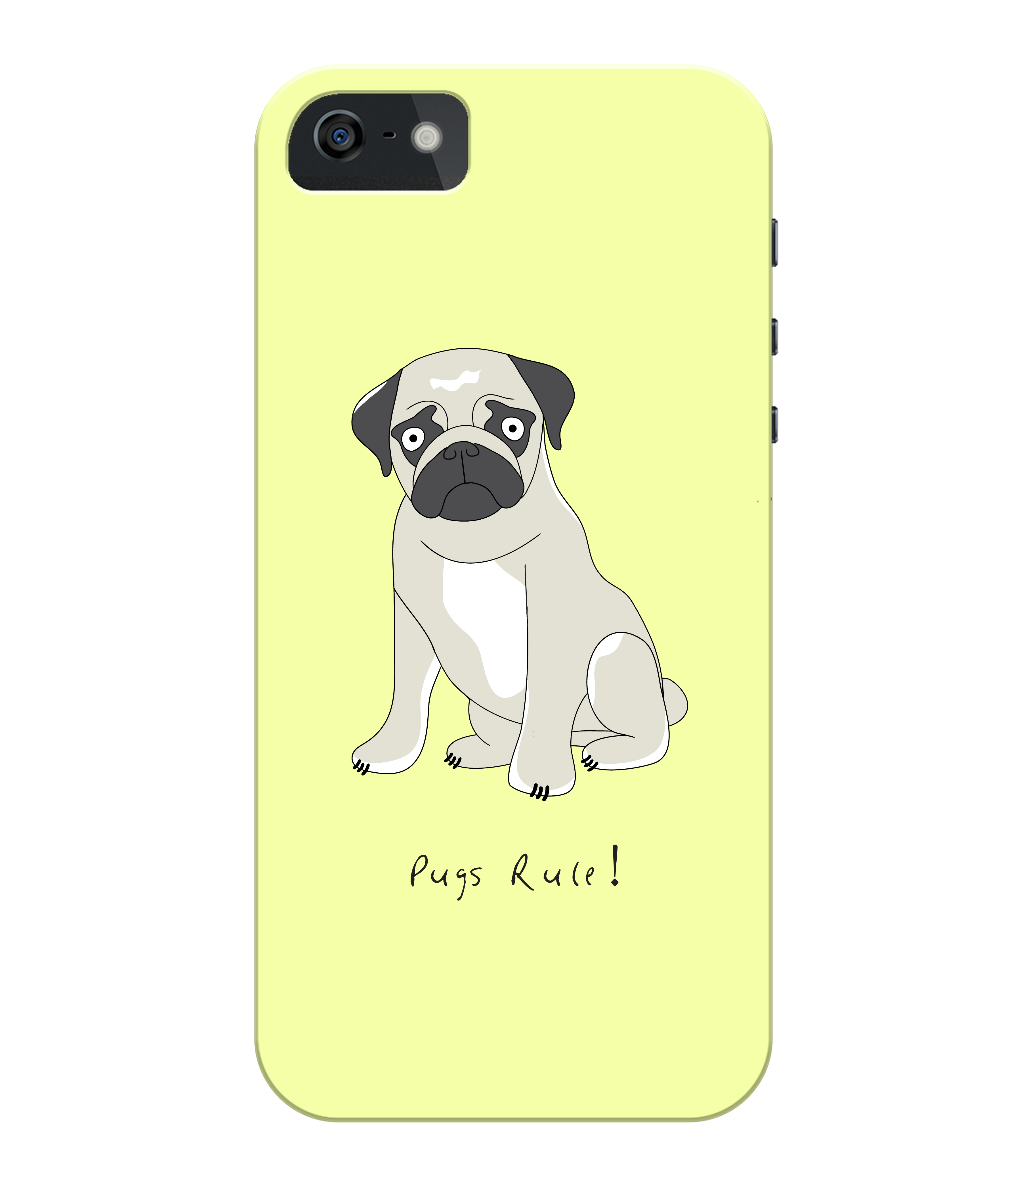 iPhone 5/5s Full Wrap Phone Case - Pugs Rule!